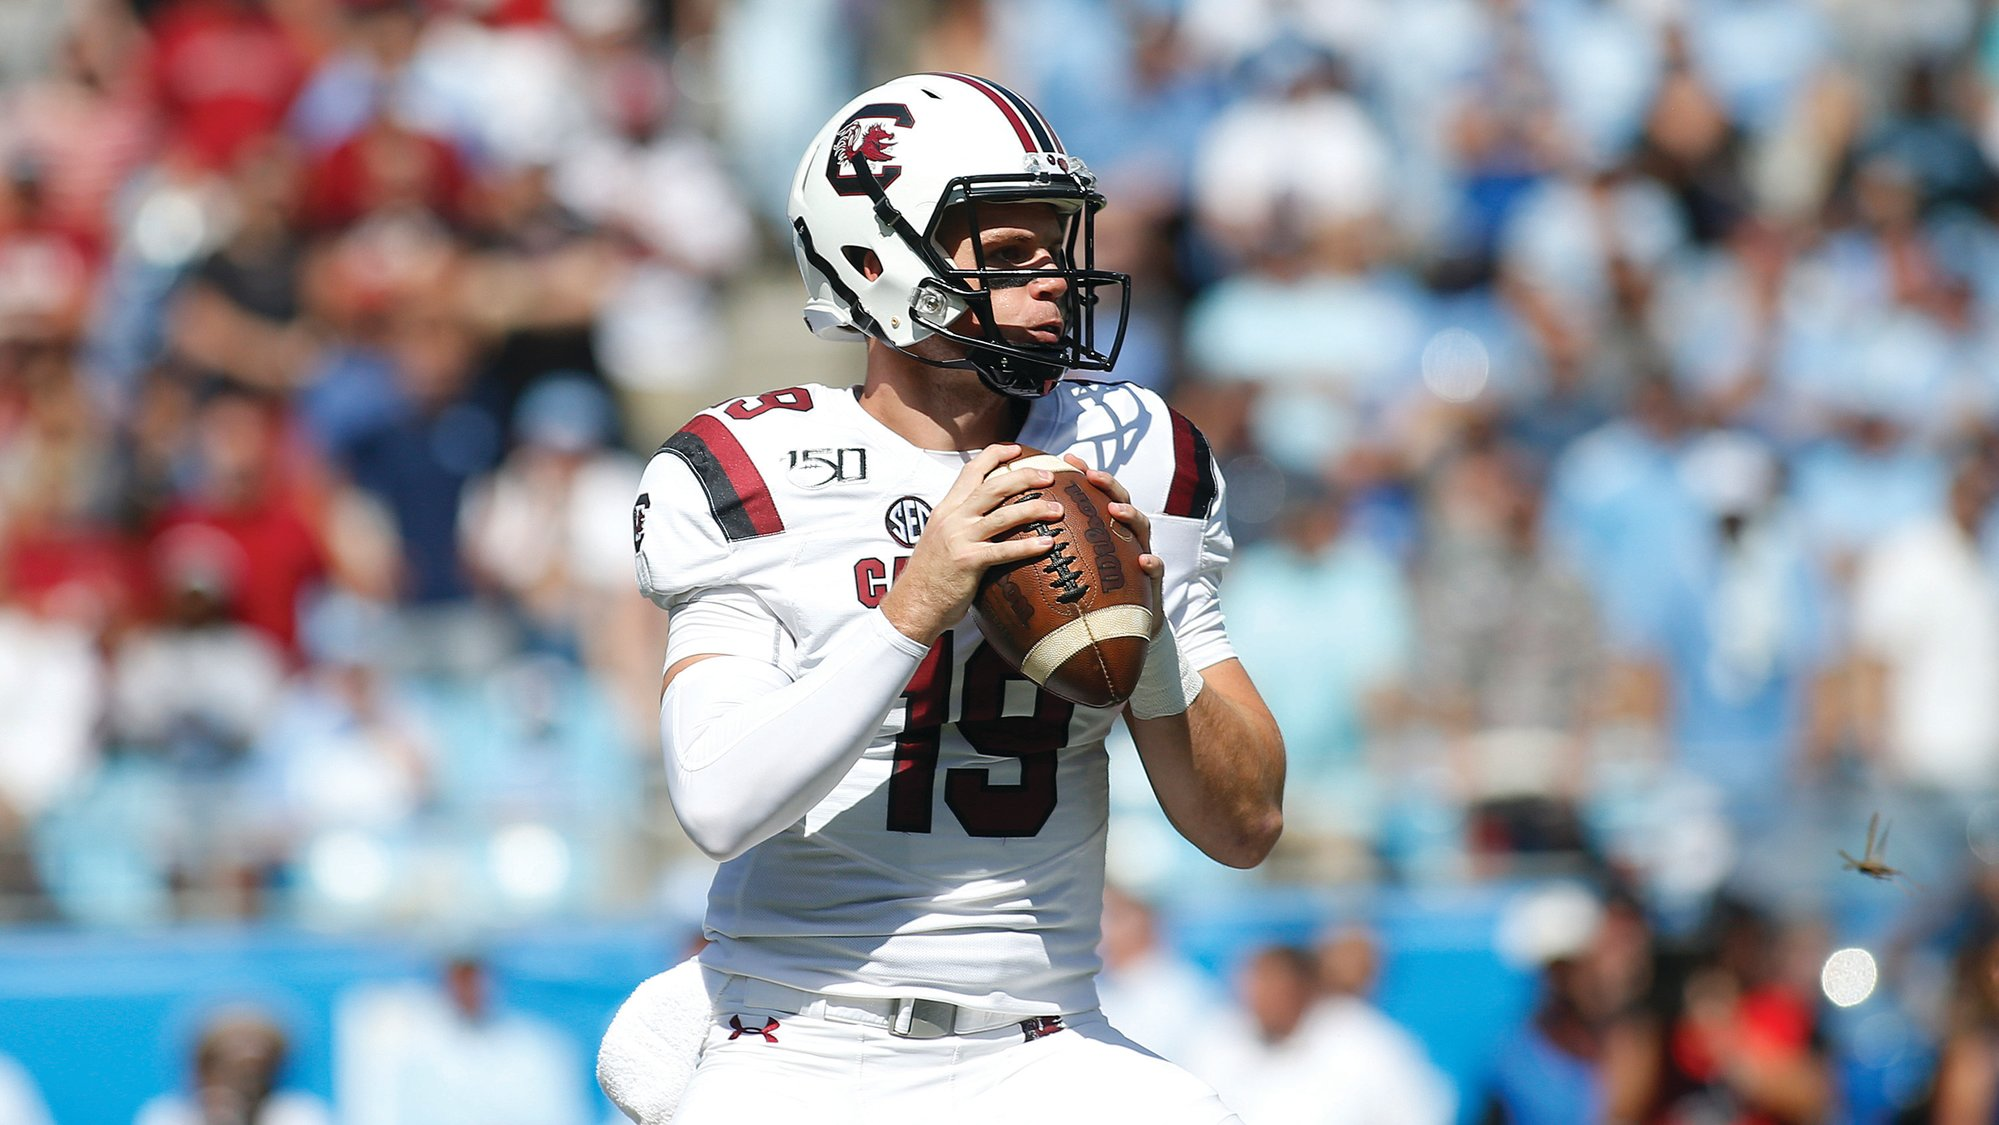 THE ASSOCIATED PRESS  South Carolina quarterback Jake Bentley hurt his foot on the final play of the Gamecocks' 24-20 loss to North Carolina on Saturday. Ryan Hilinski will start behind center on Saturday against Charleston Southern.